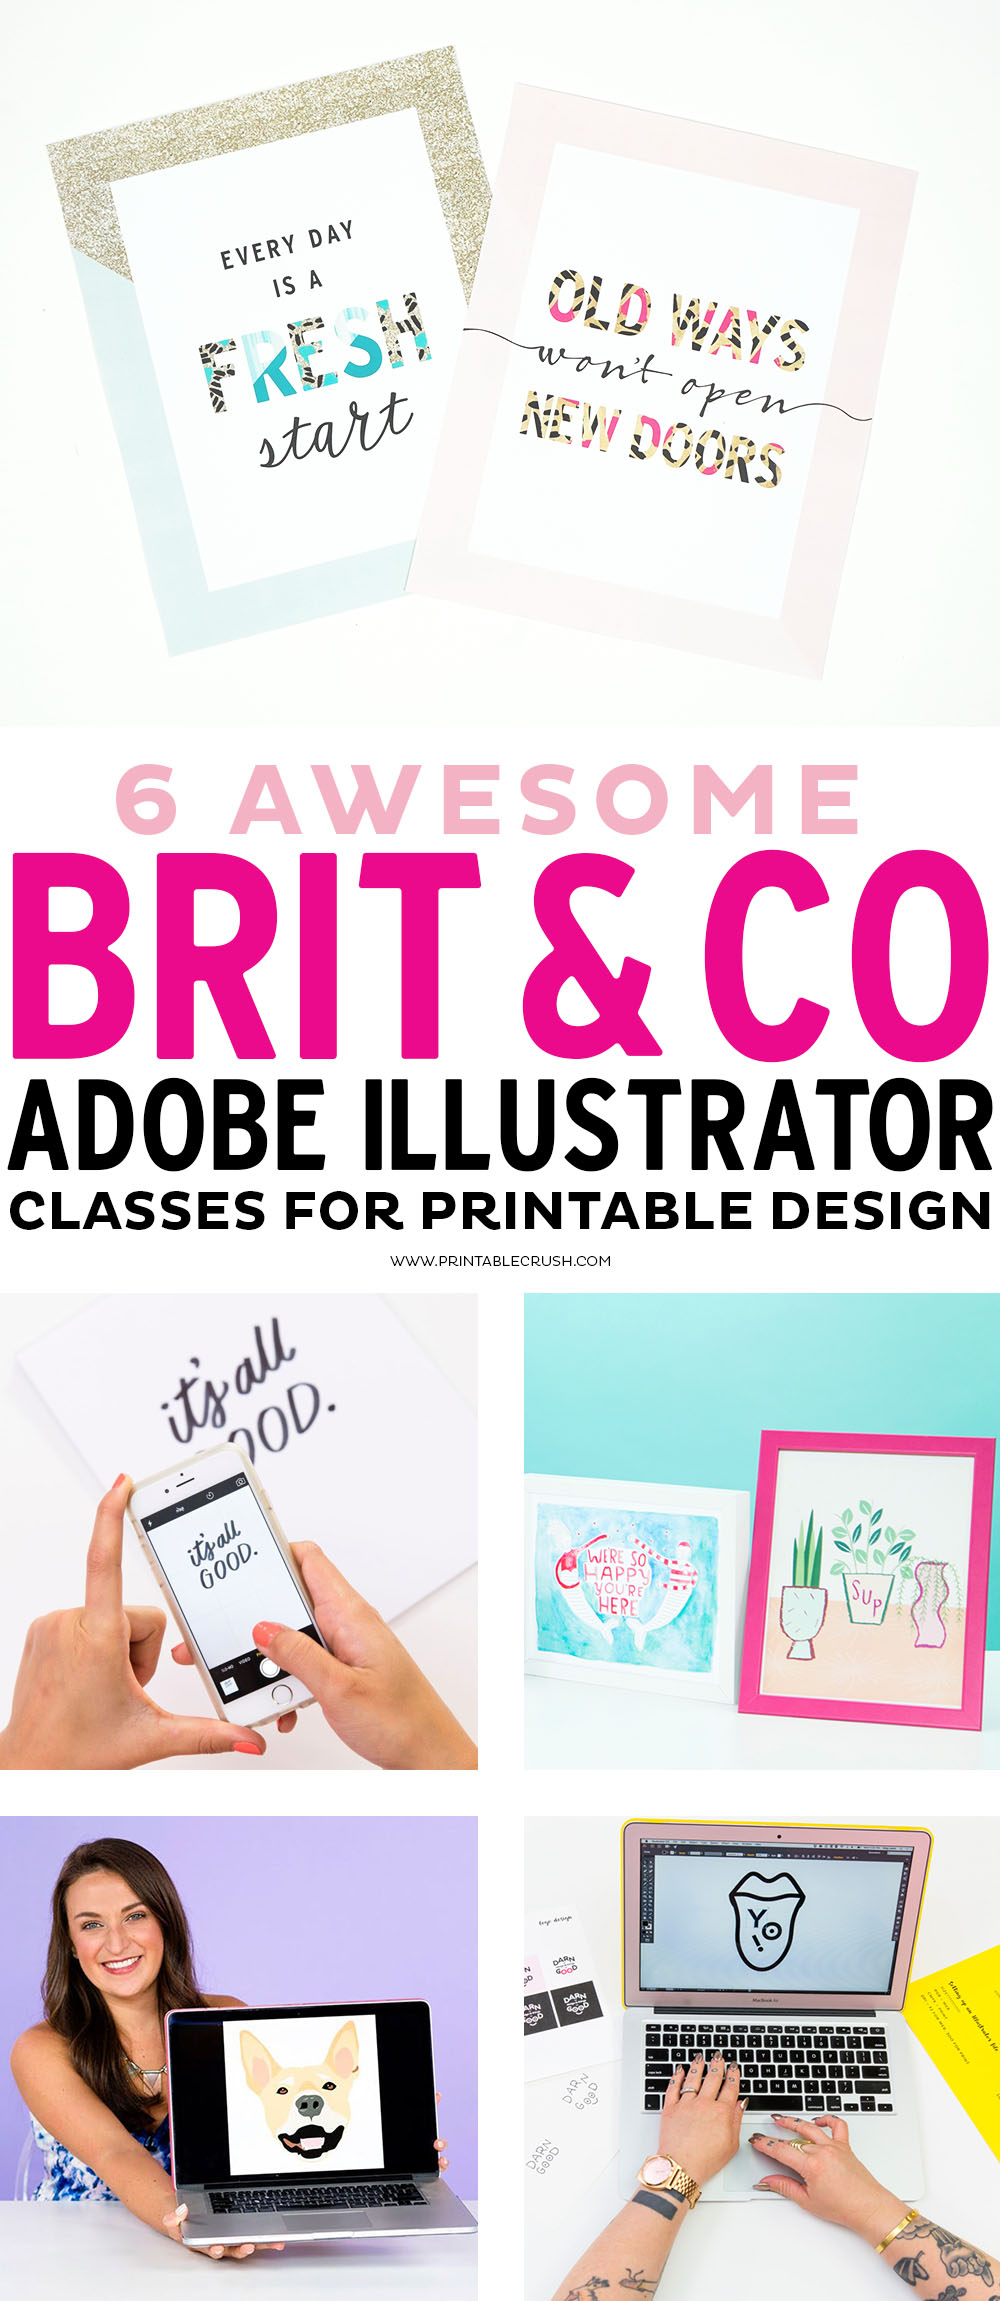 Check out these 7 Awesome Brit and Co Adobe Illustrator Classes for Printable Design! If you want to design printables for profit, for classrooms, or just because, these classes will help you become a pro! via @printablecrush